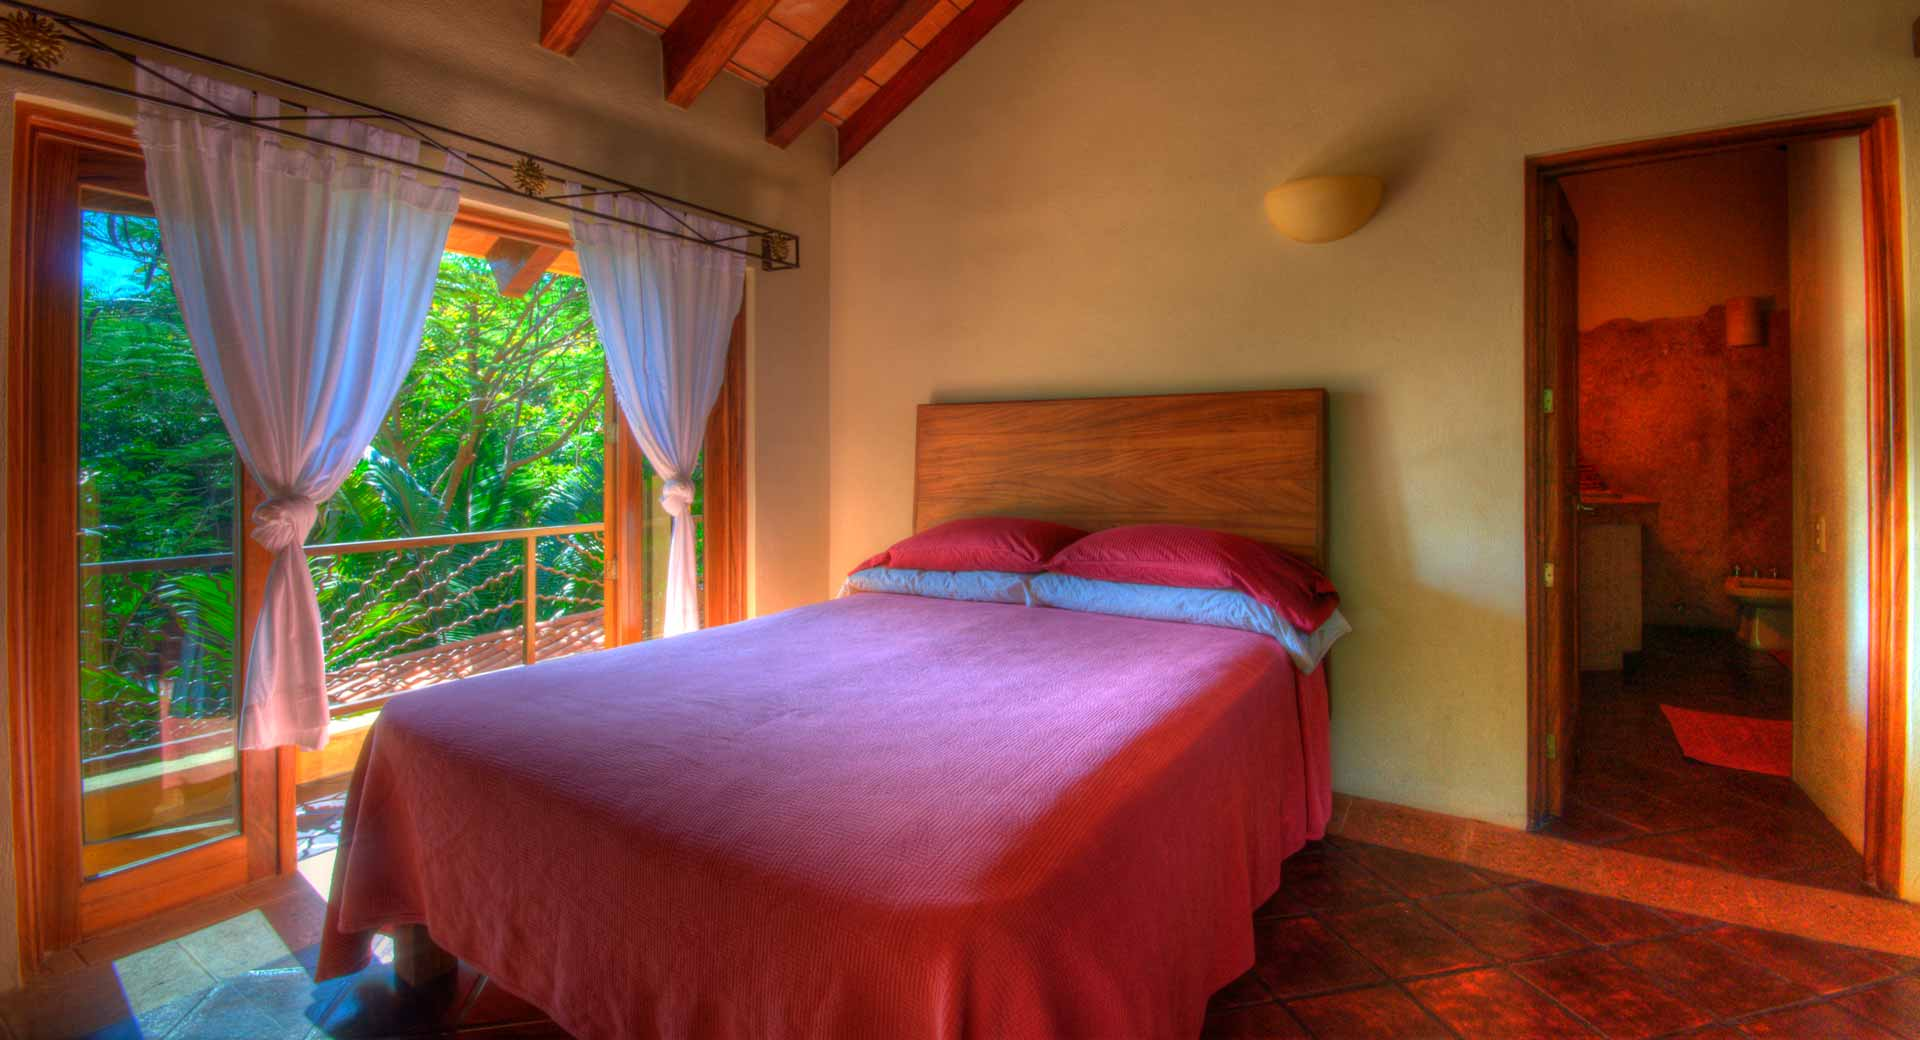 Bedroom with lush vegetation outside